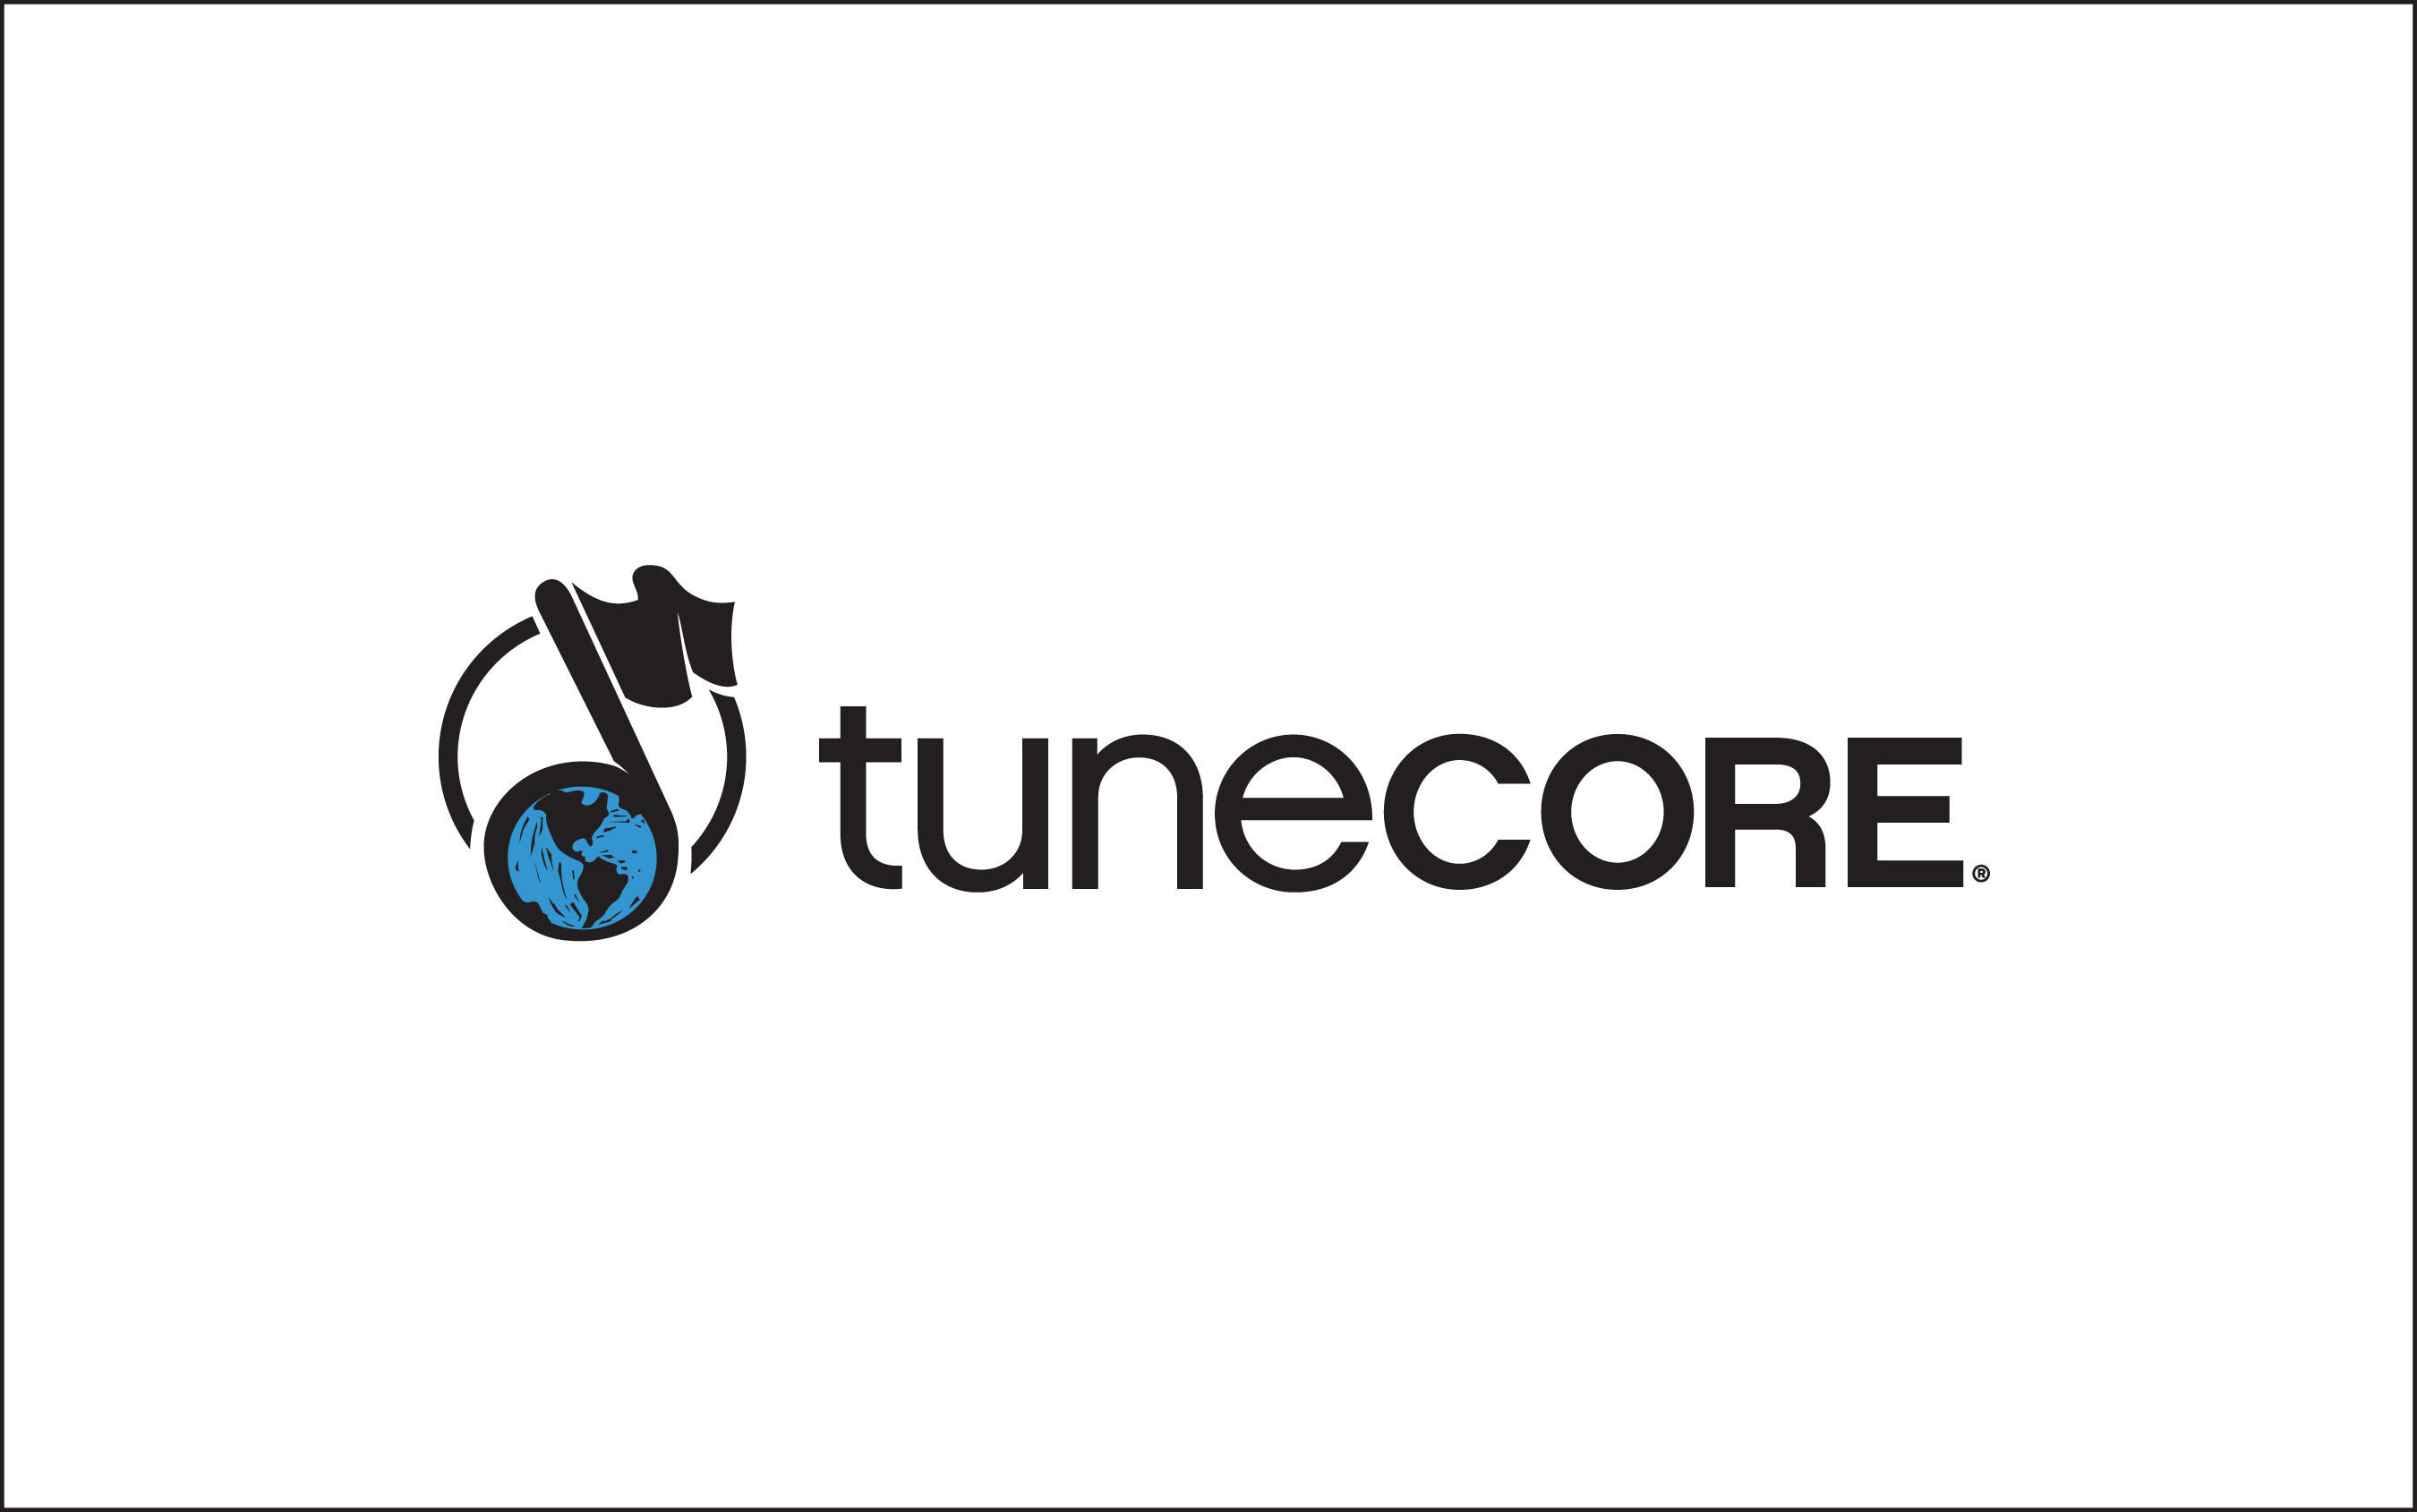 TuneCore brings more music to more people, while helping musicians and songwriters increase money-earning ...